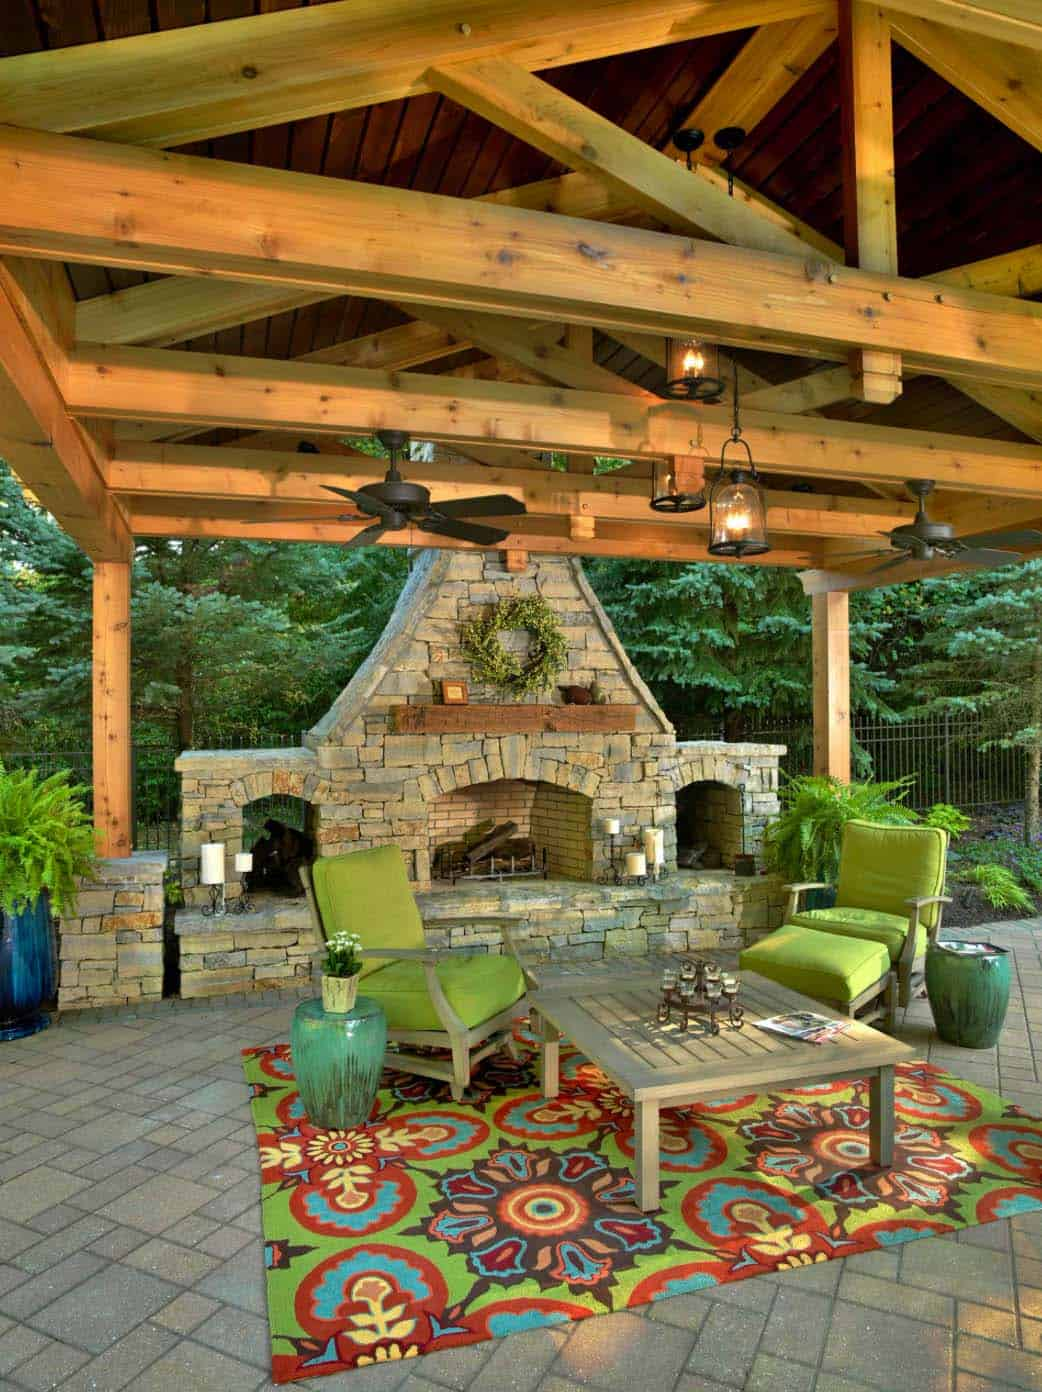 44 Traditional outdoor patio designs to capture your ... on Outdoor Deck Patio Ideas id=86024